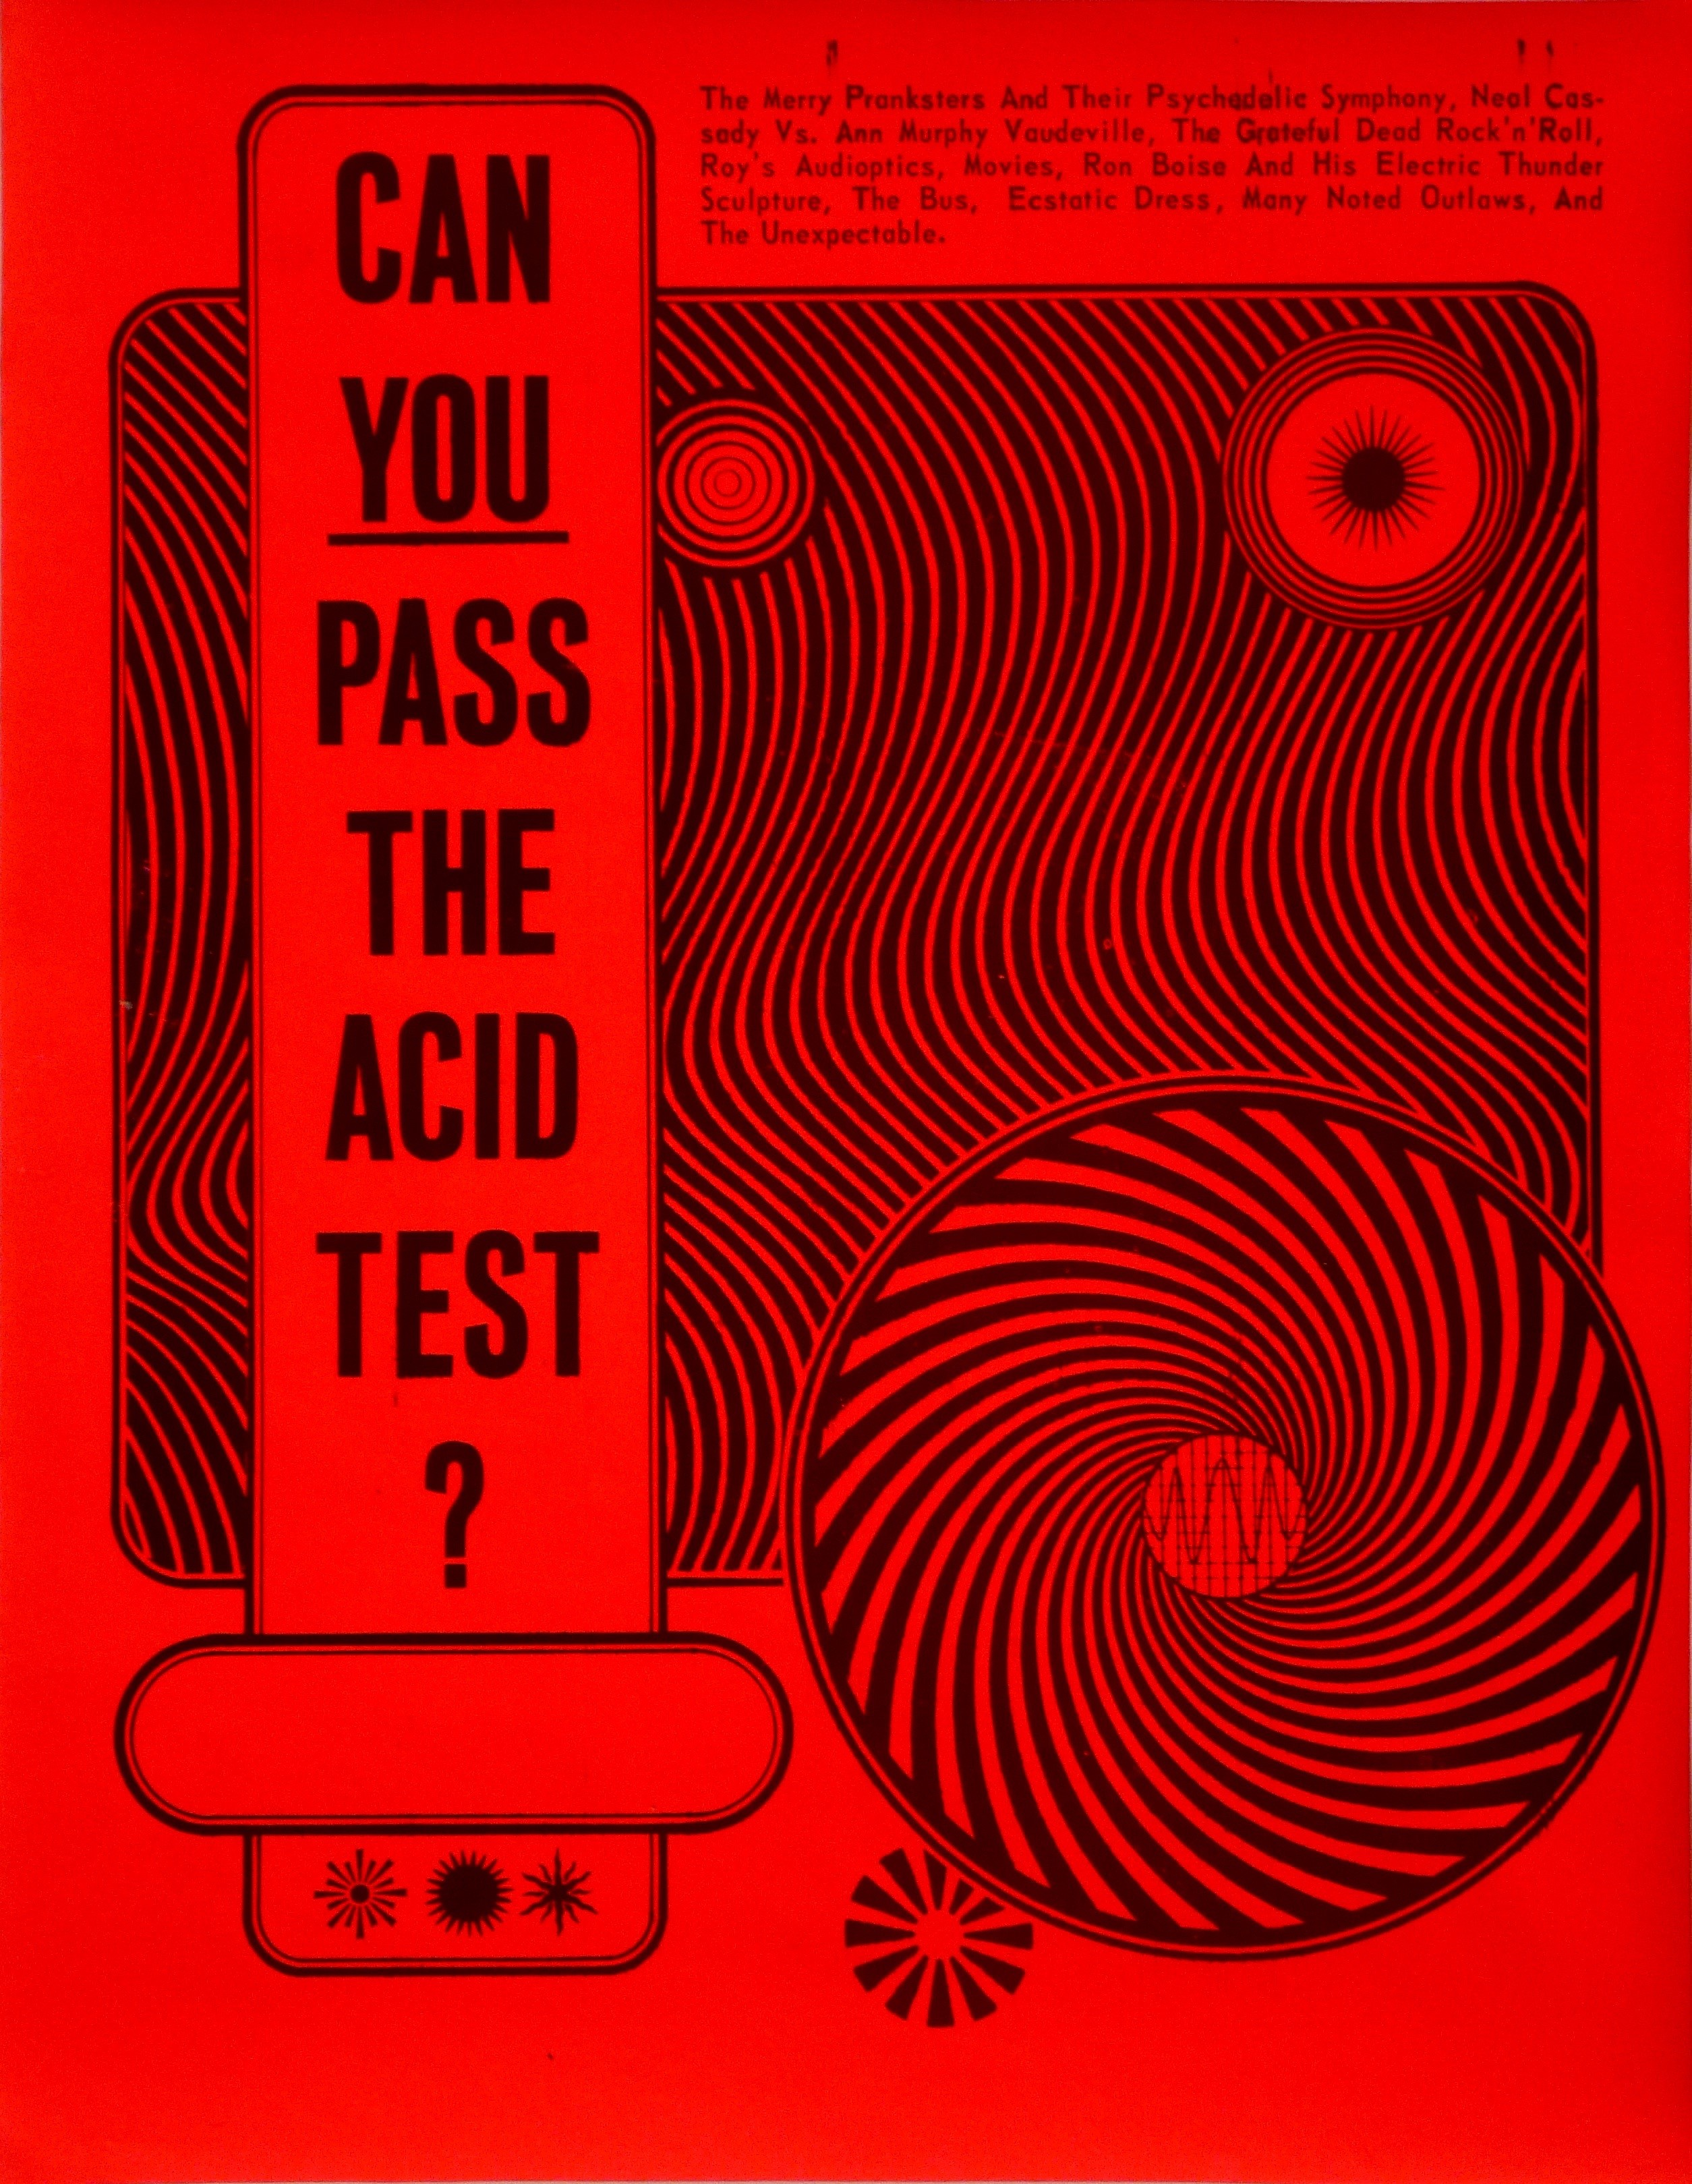 The Acid Test, by Wes Wilson, courtesy of Steward Brand.